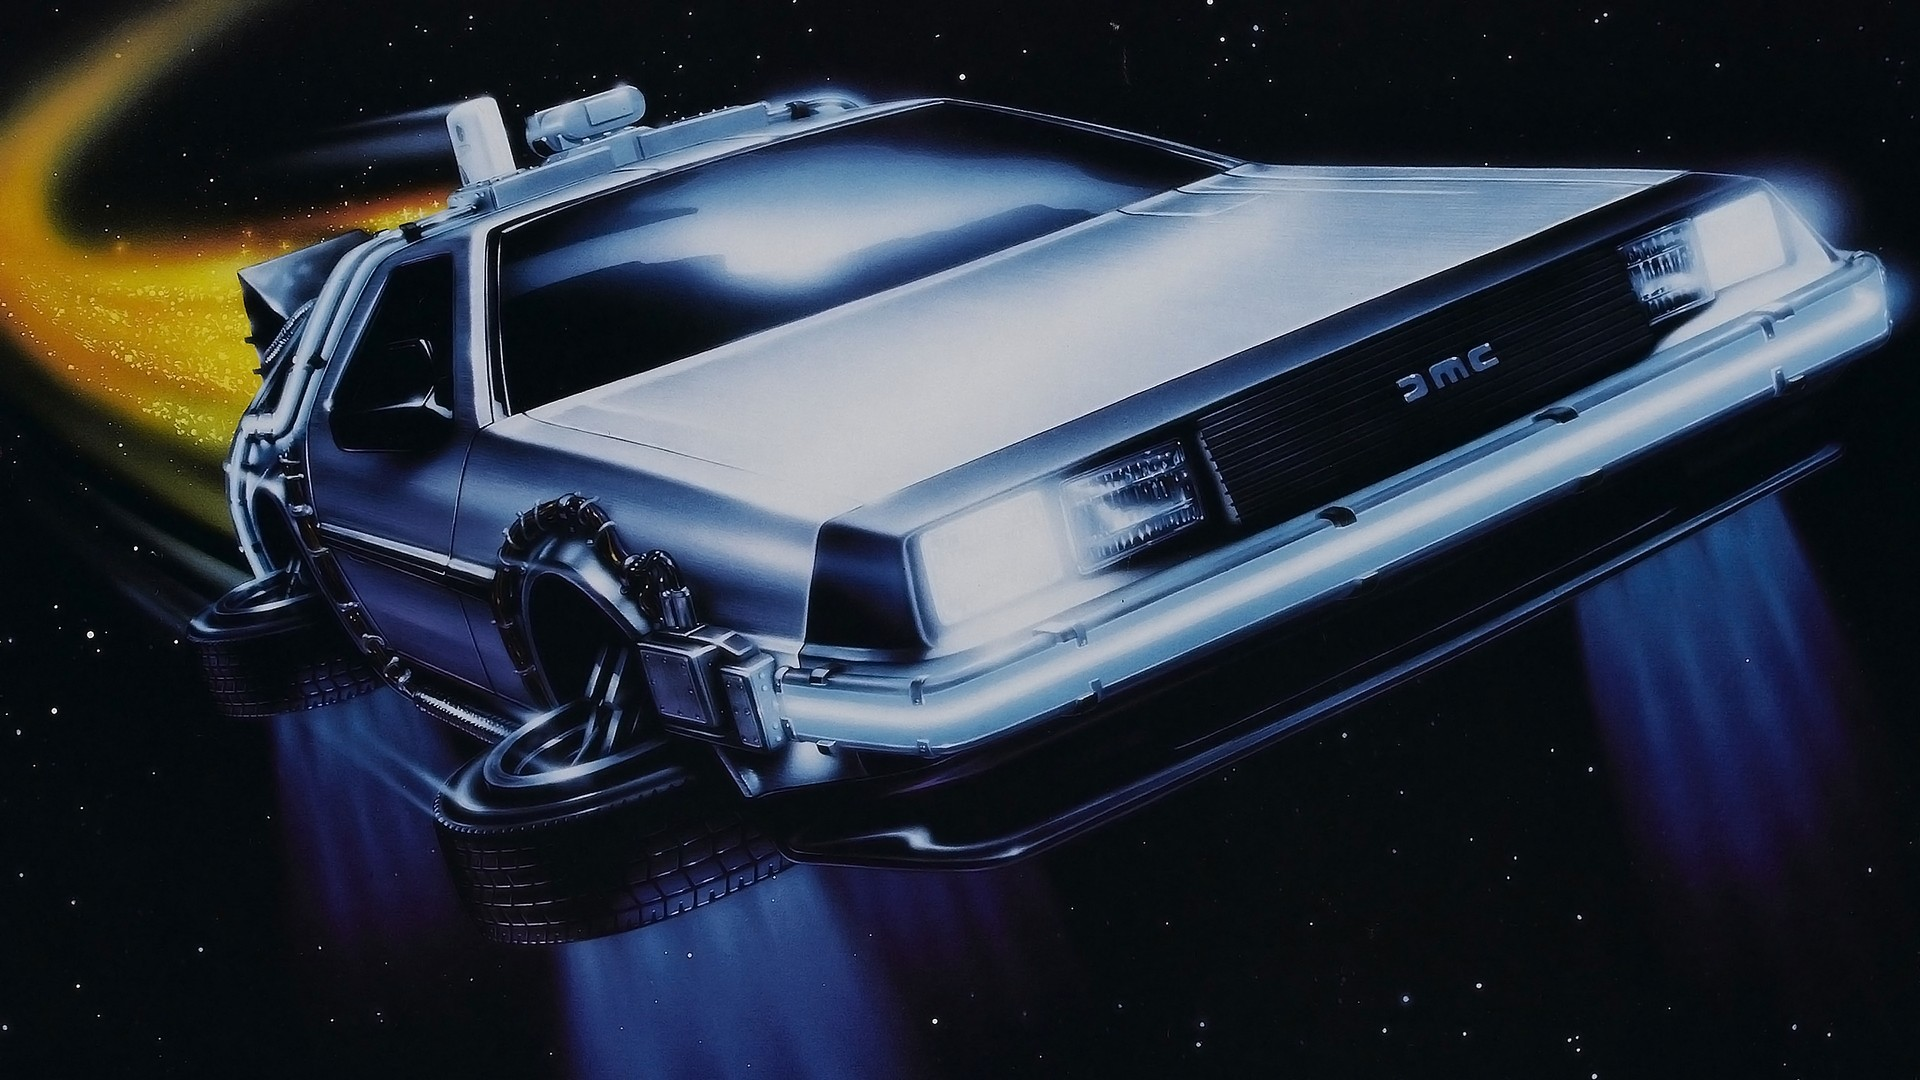 2000x1236 Back To The Future, DeLorean Wallpapers HD / Desktop and Mobile Backgrounds